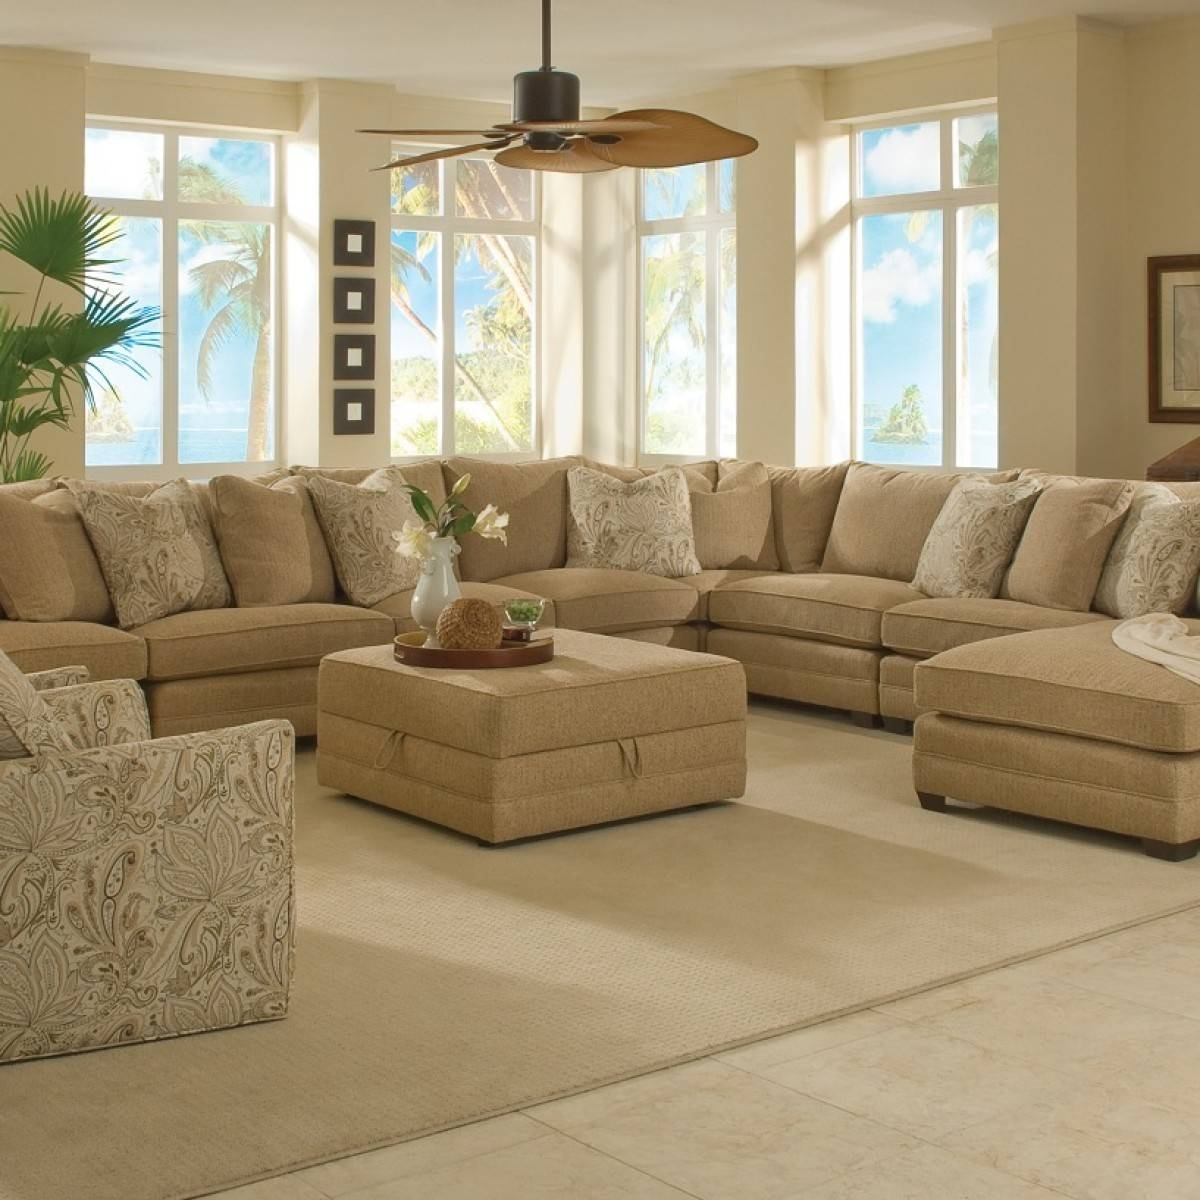 Furniture: Nice Extra Large Sectional Sofa For Large Living Room within Sectional Sofa With Large Ottoman (Image 15 of 30)